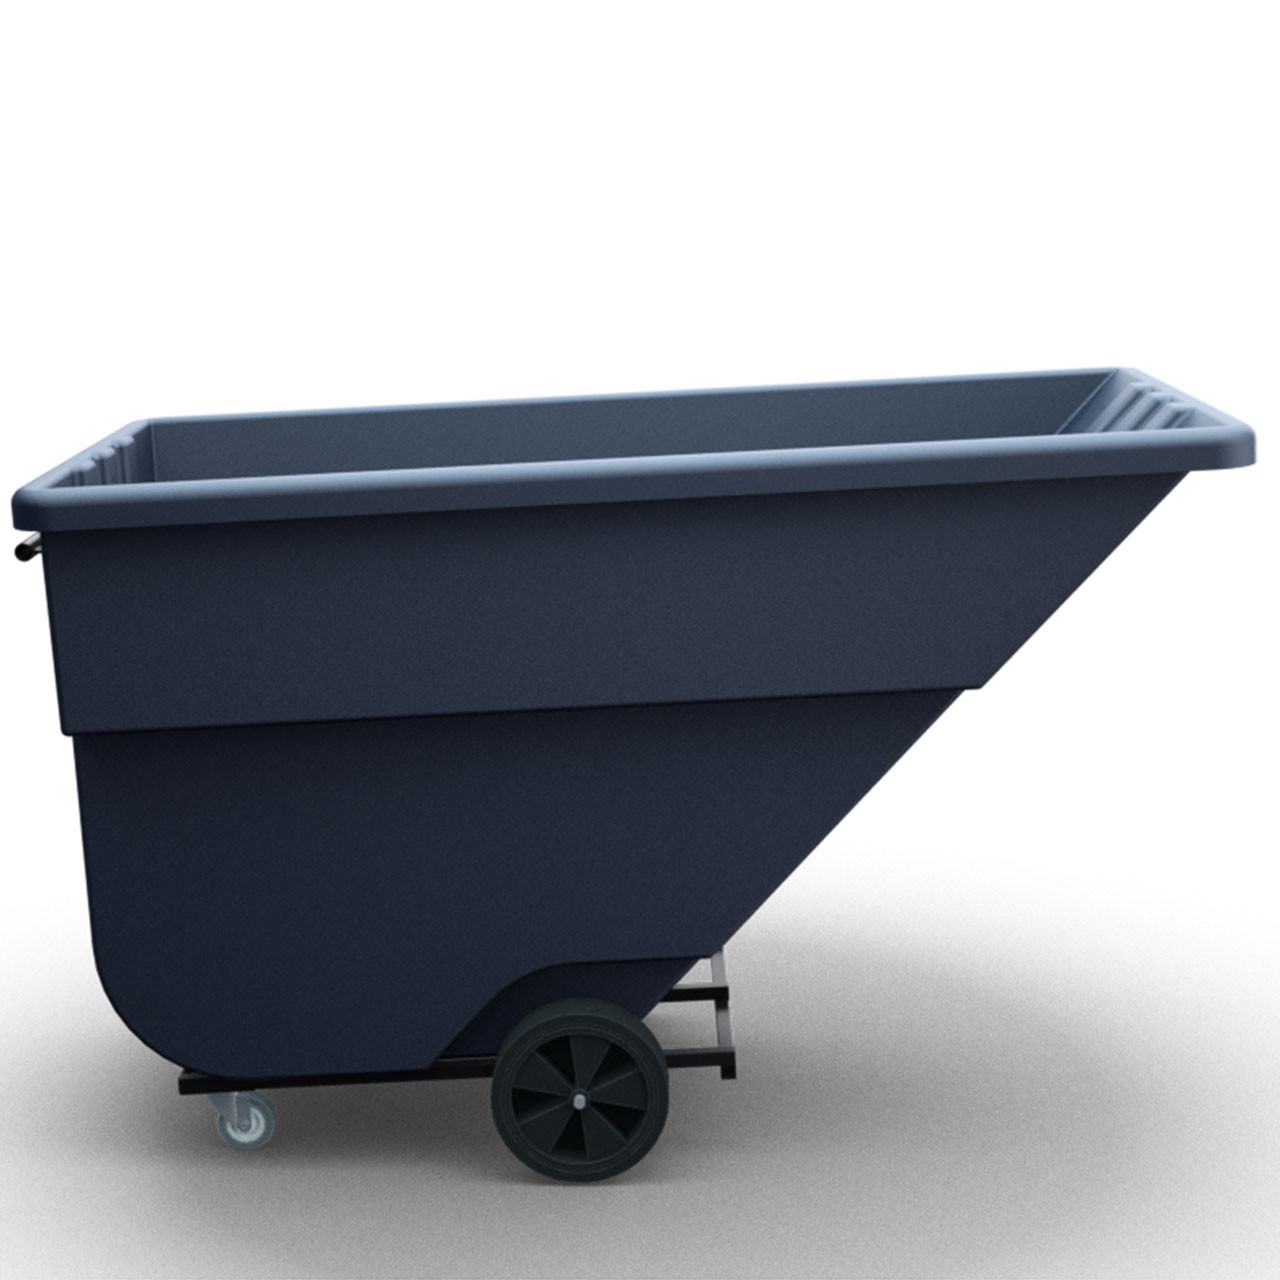 Tilt-Trux Bin Cart Side View